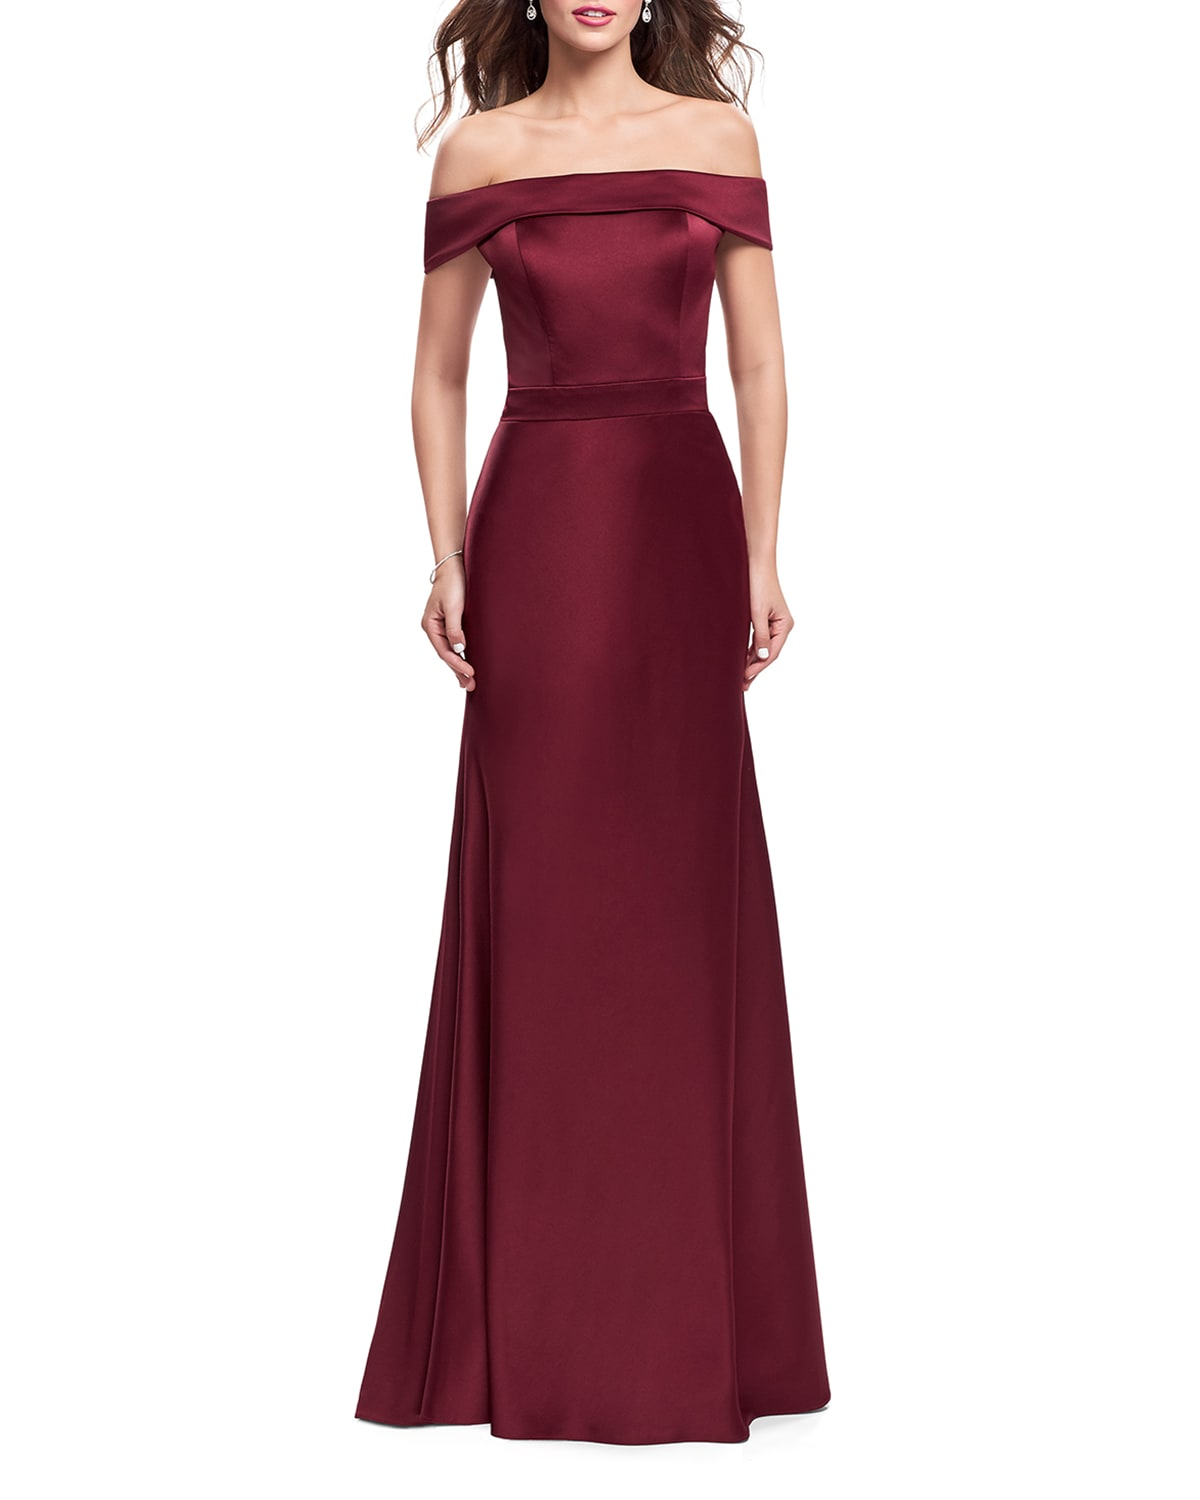 Off-the-Shoulder Short-Sleeve Satin Gown w/ Flared Skirt